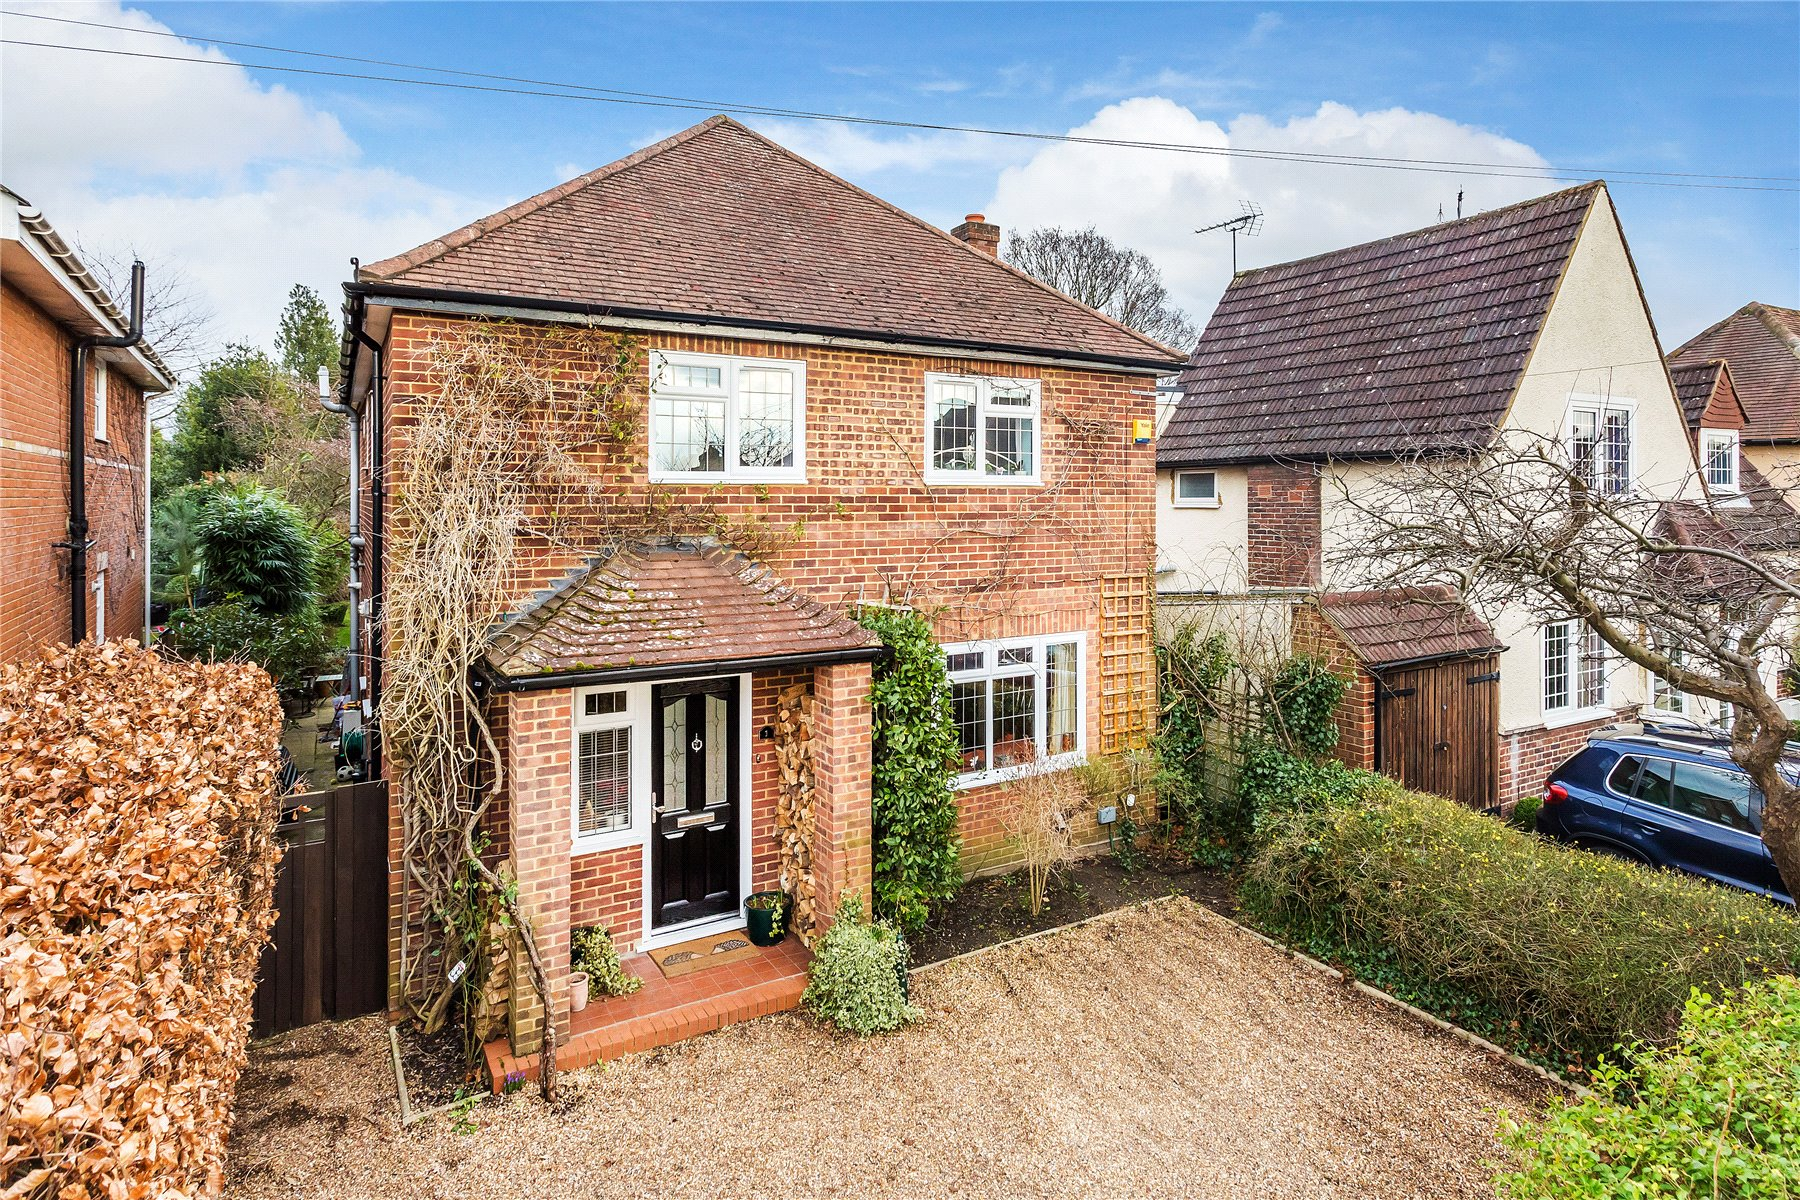 4 Bedrooms Detached House for sale in Kirby Road, Horsell, Surrey, GU21